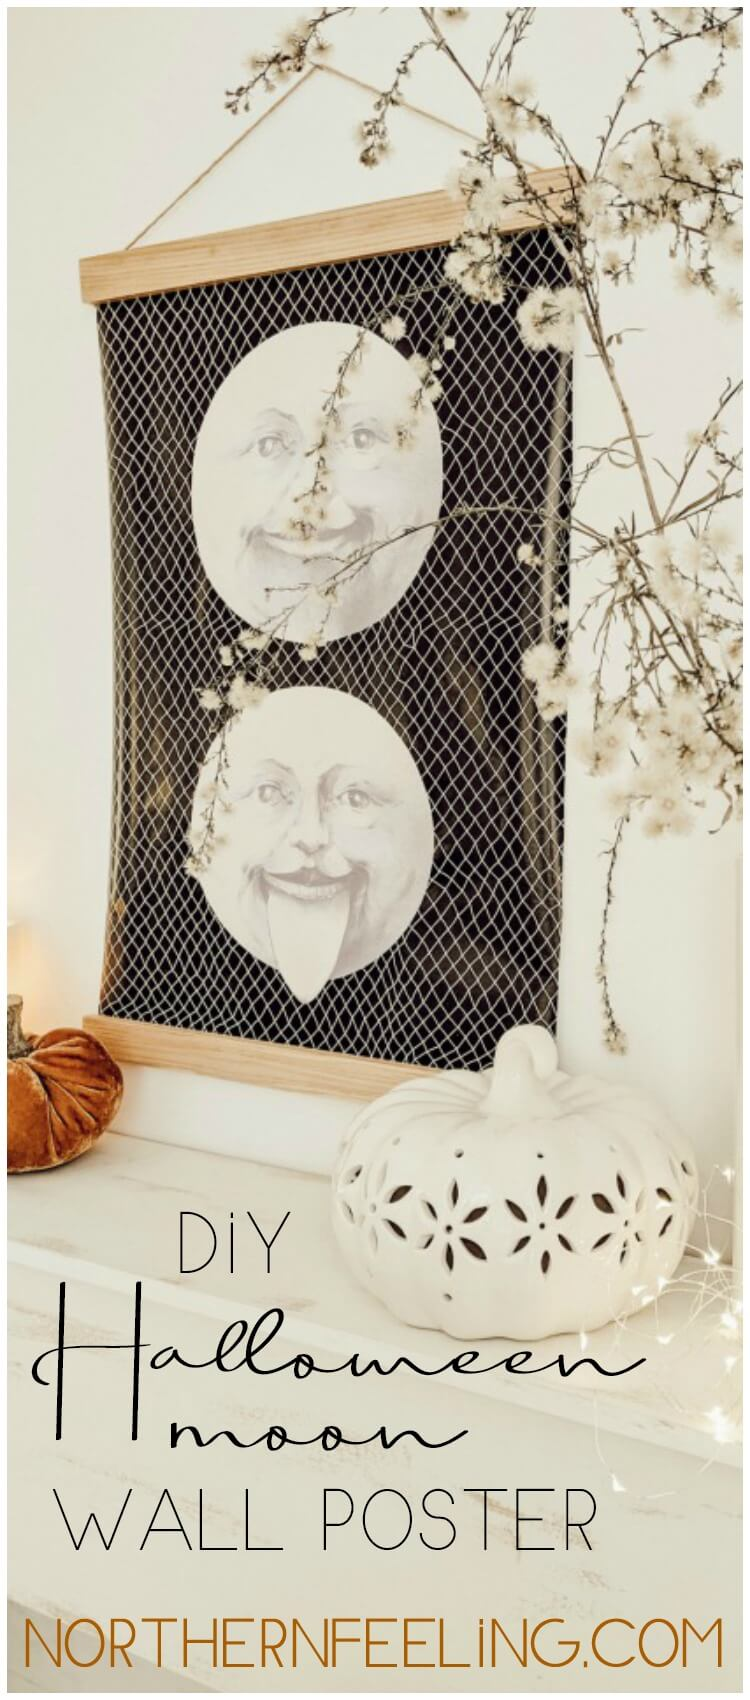 DIY Halloween moon wall poster // northernfeeling.com